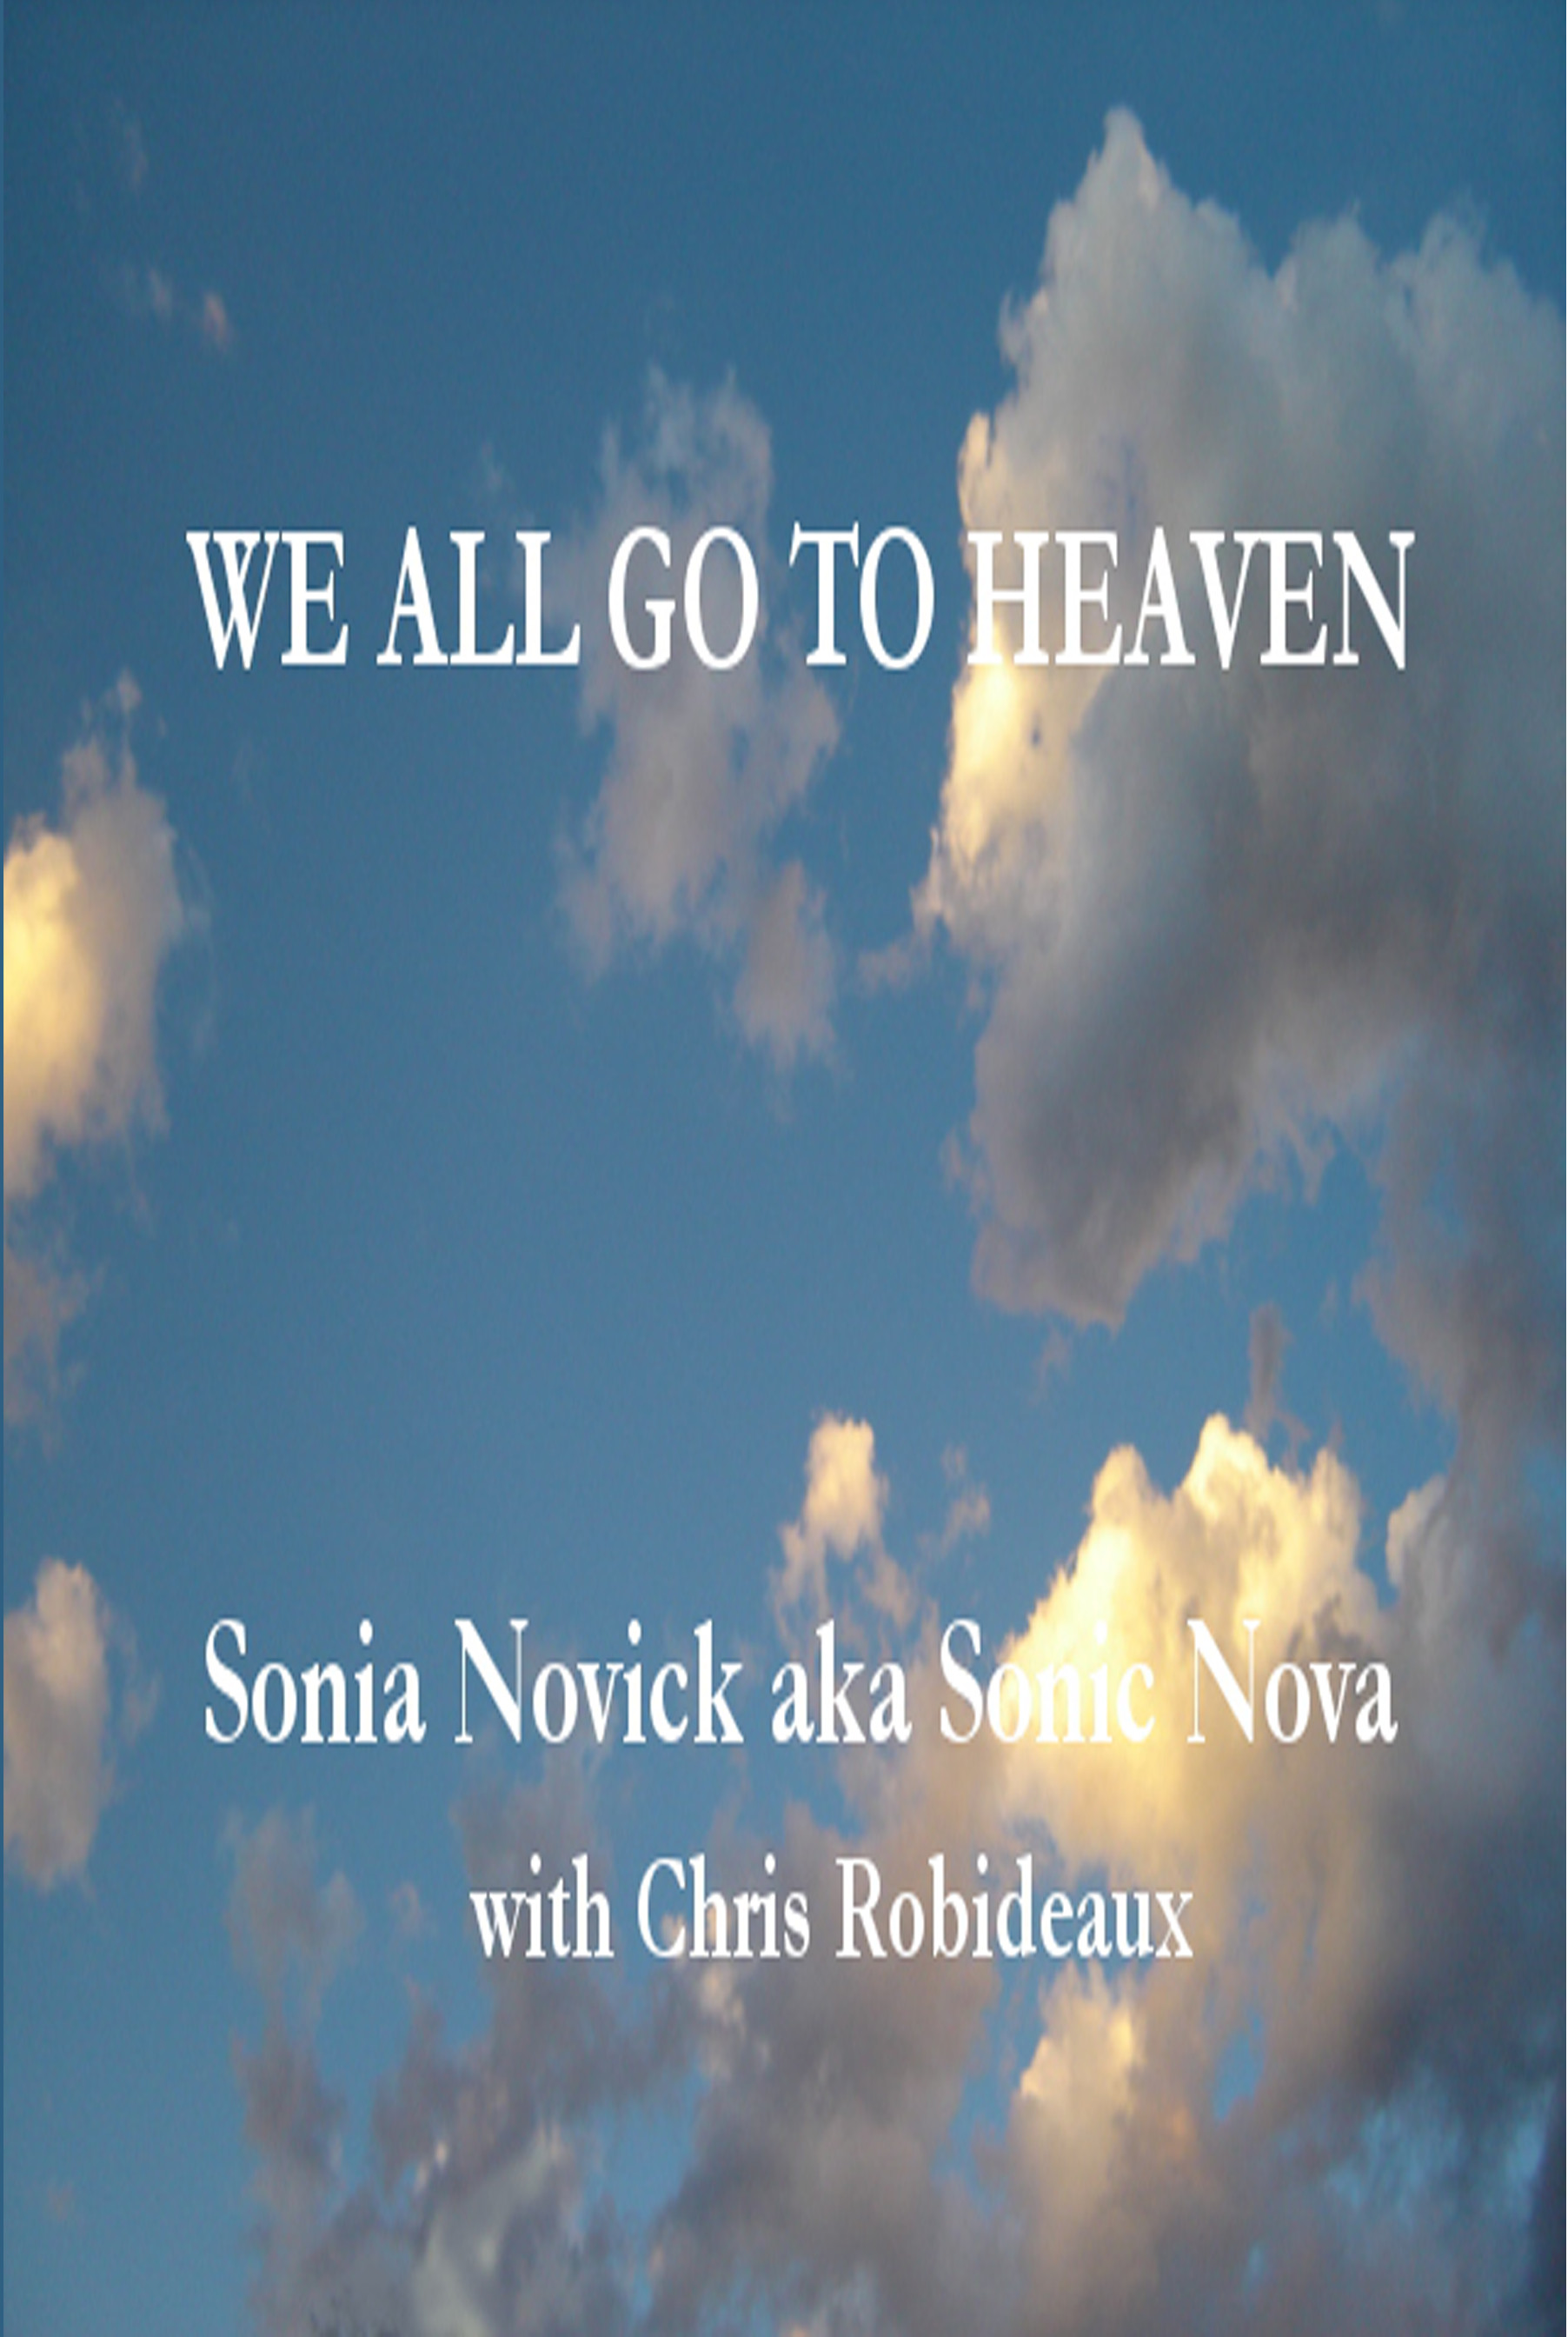 we all go to heaven, sonic nova, sonia novick, psychic